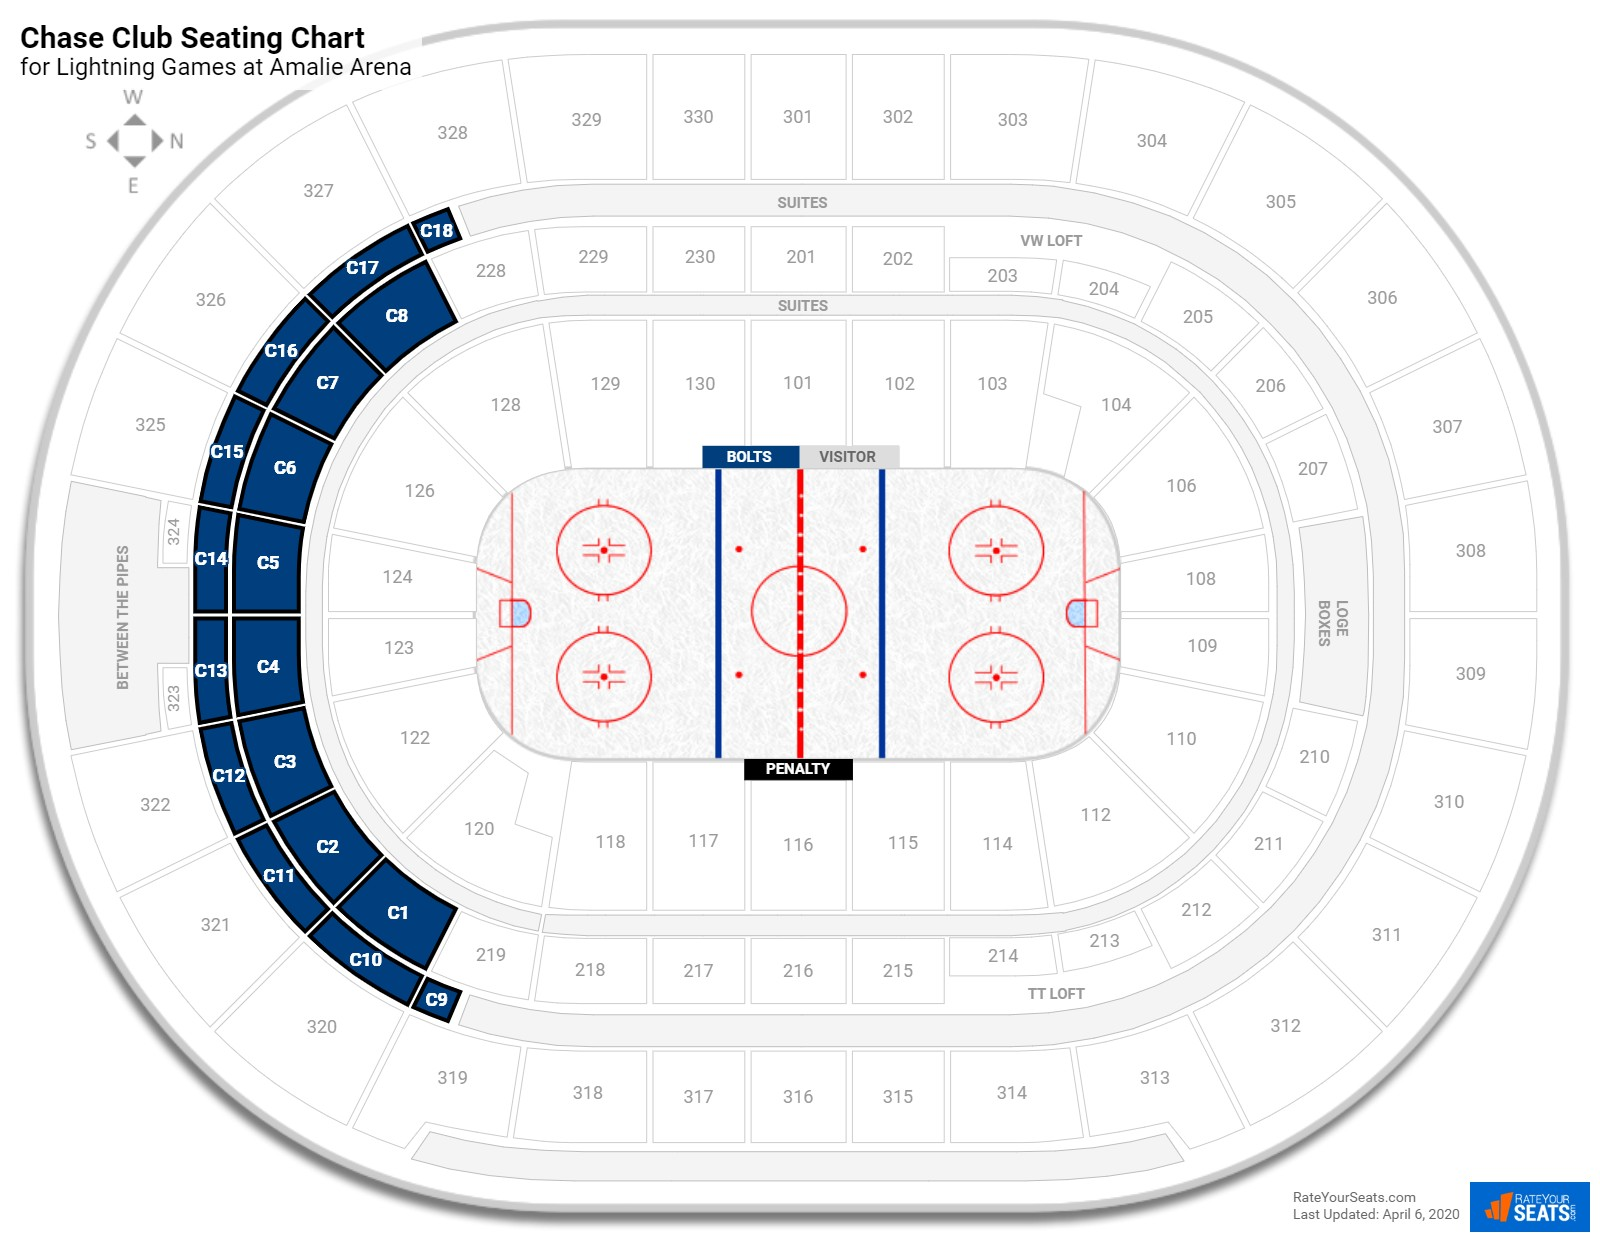 Amalie Arena Chase Club seating chart